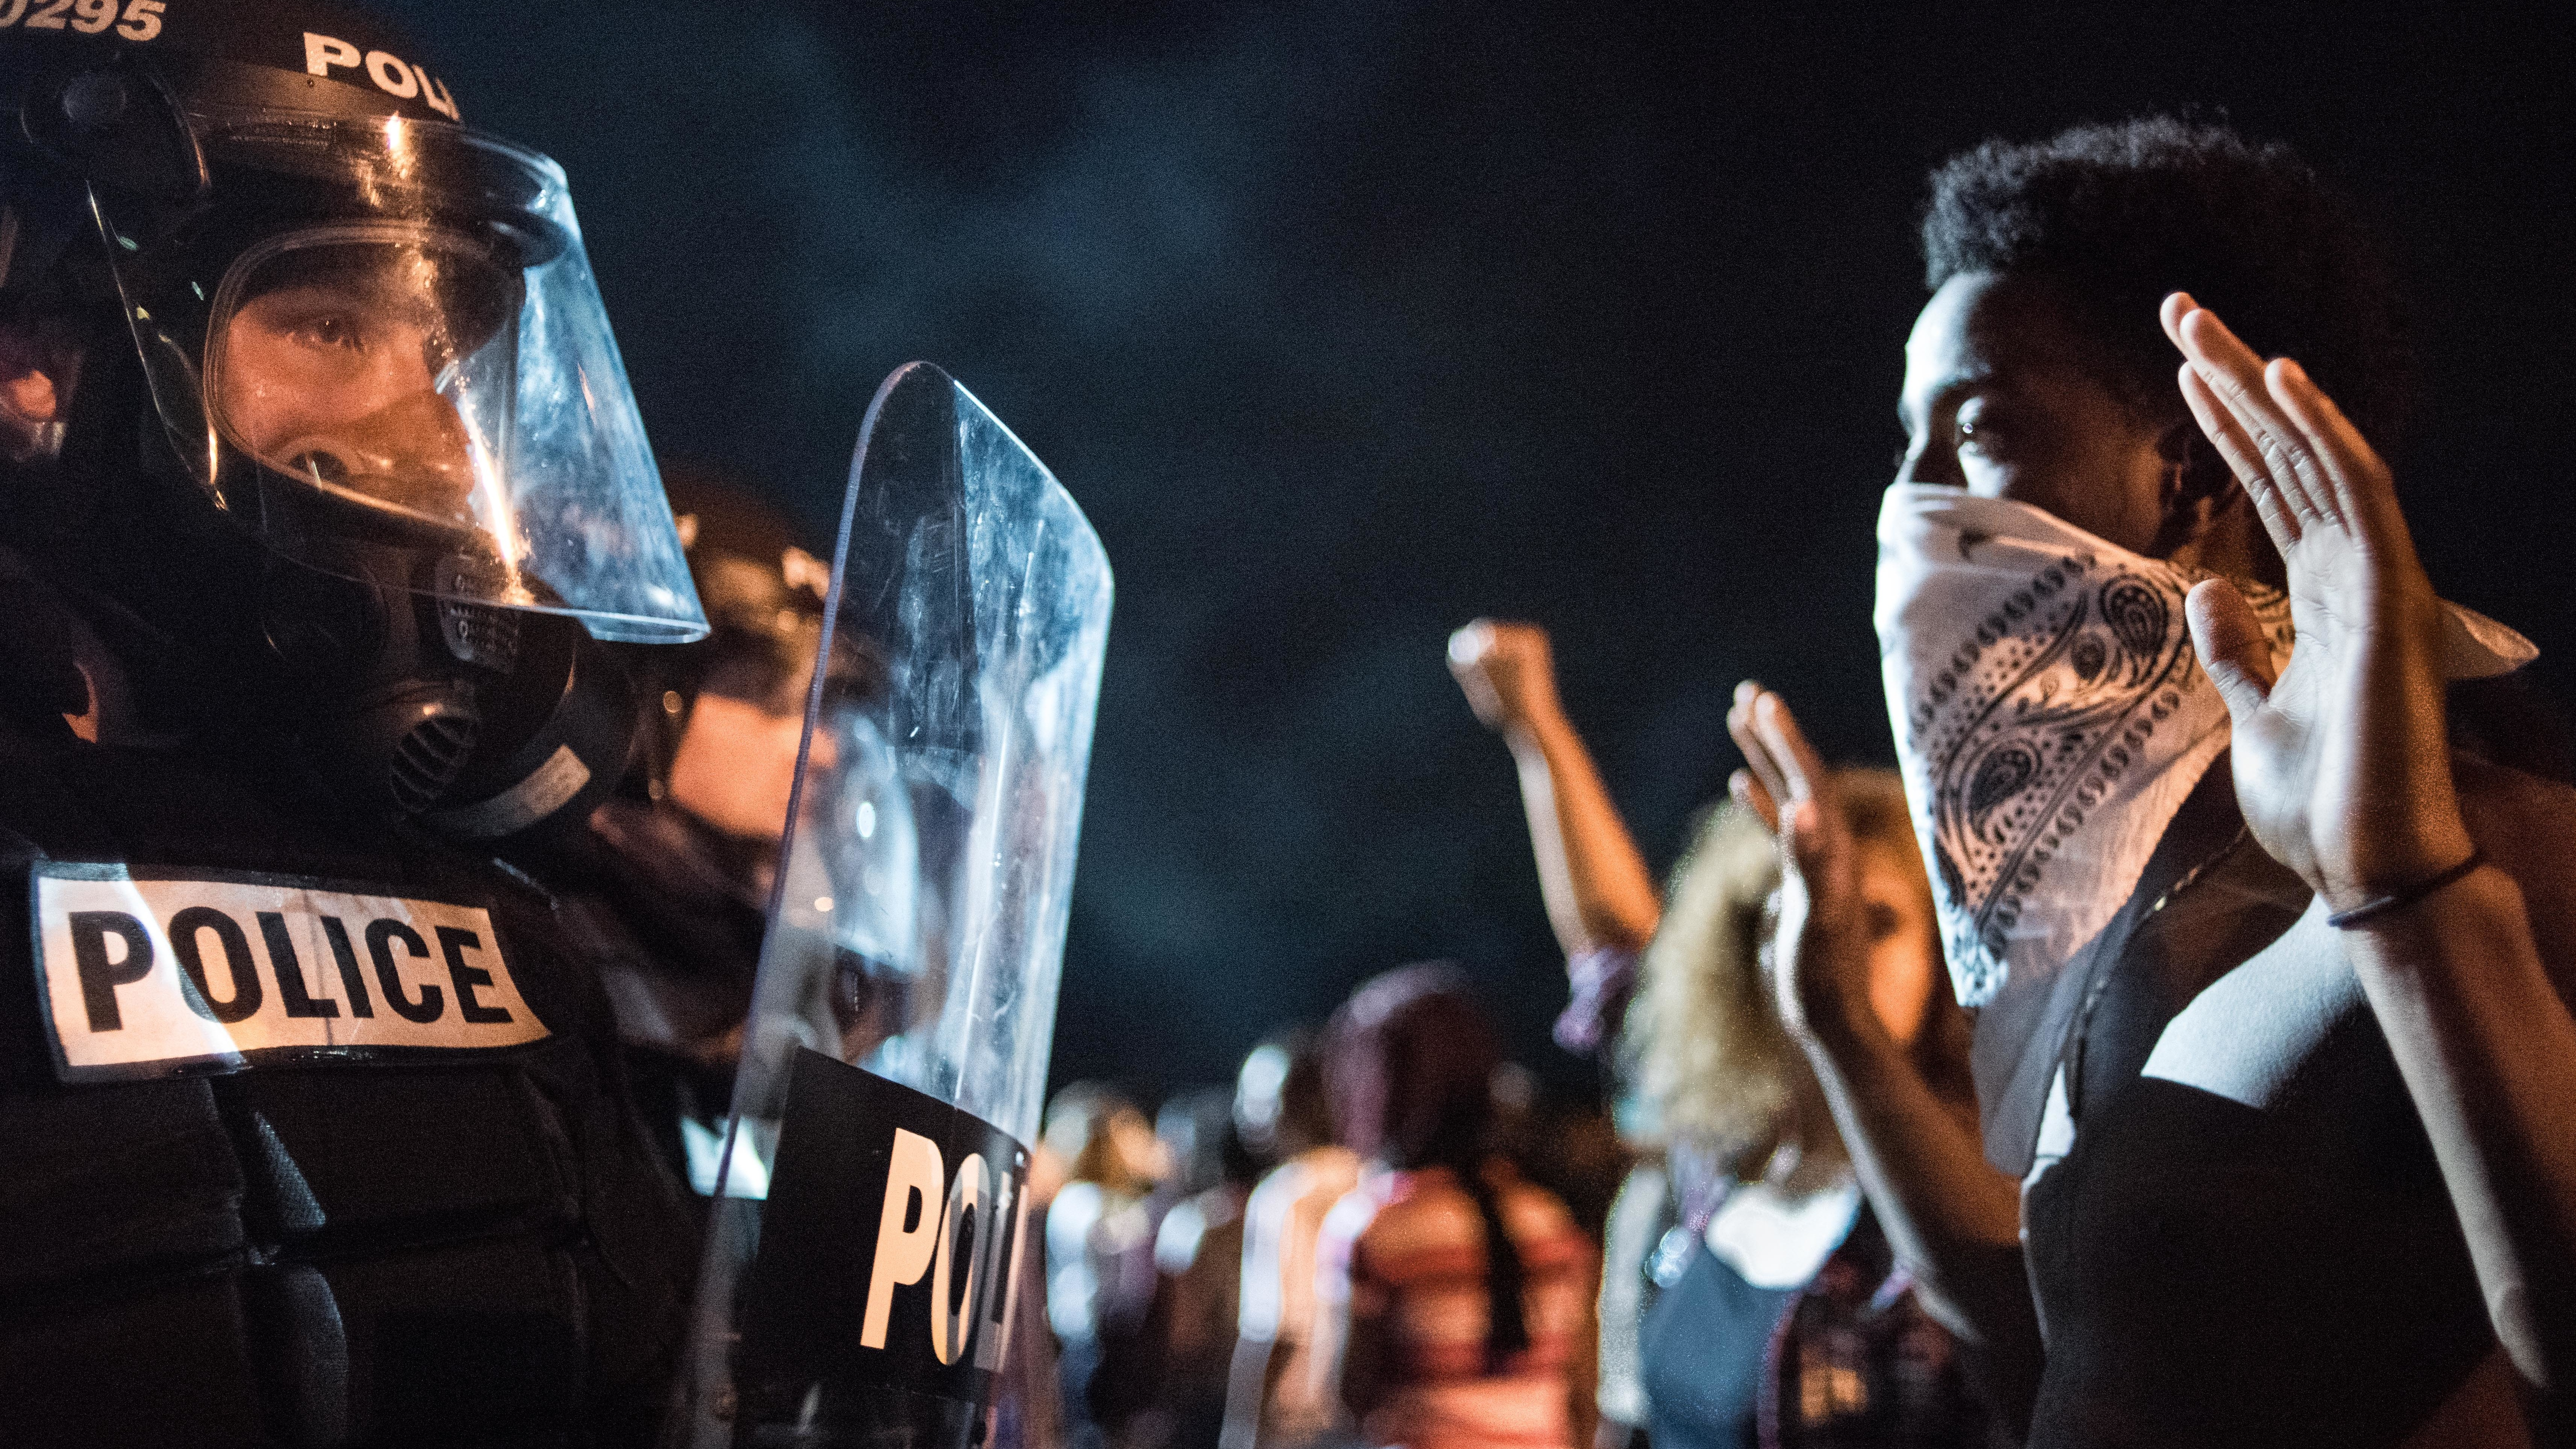 Police officers face off with protesters on Interstate 85 in Charlotte, N.C., during demonstrations following the death of a man shot by a police officer on Tuesday. (Photo by Sean Rayford/Getty Images)